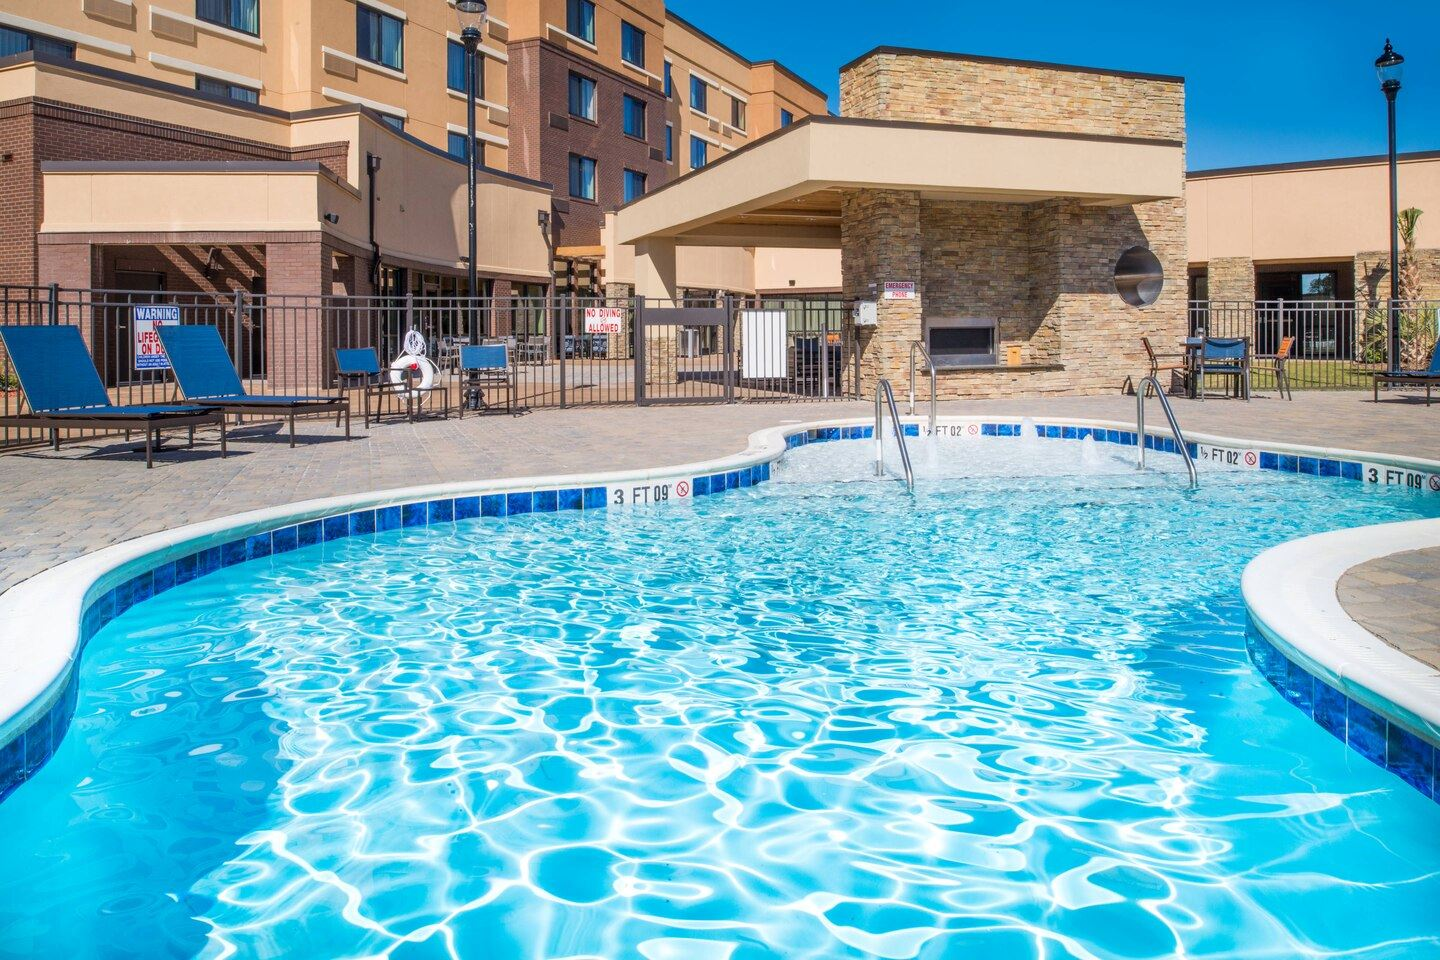 Pool Access with Affordable Hotel Options